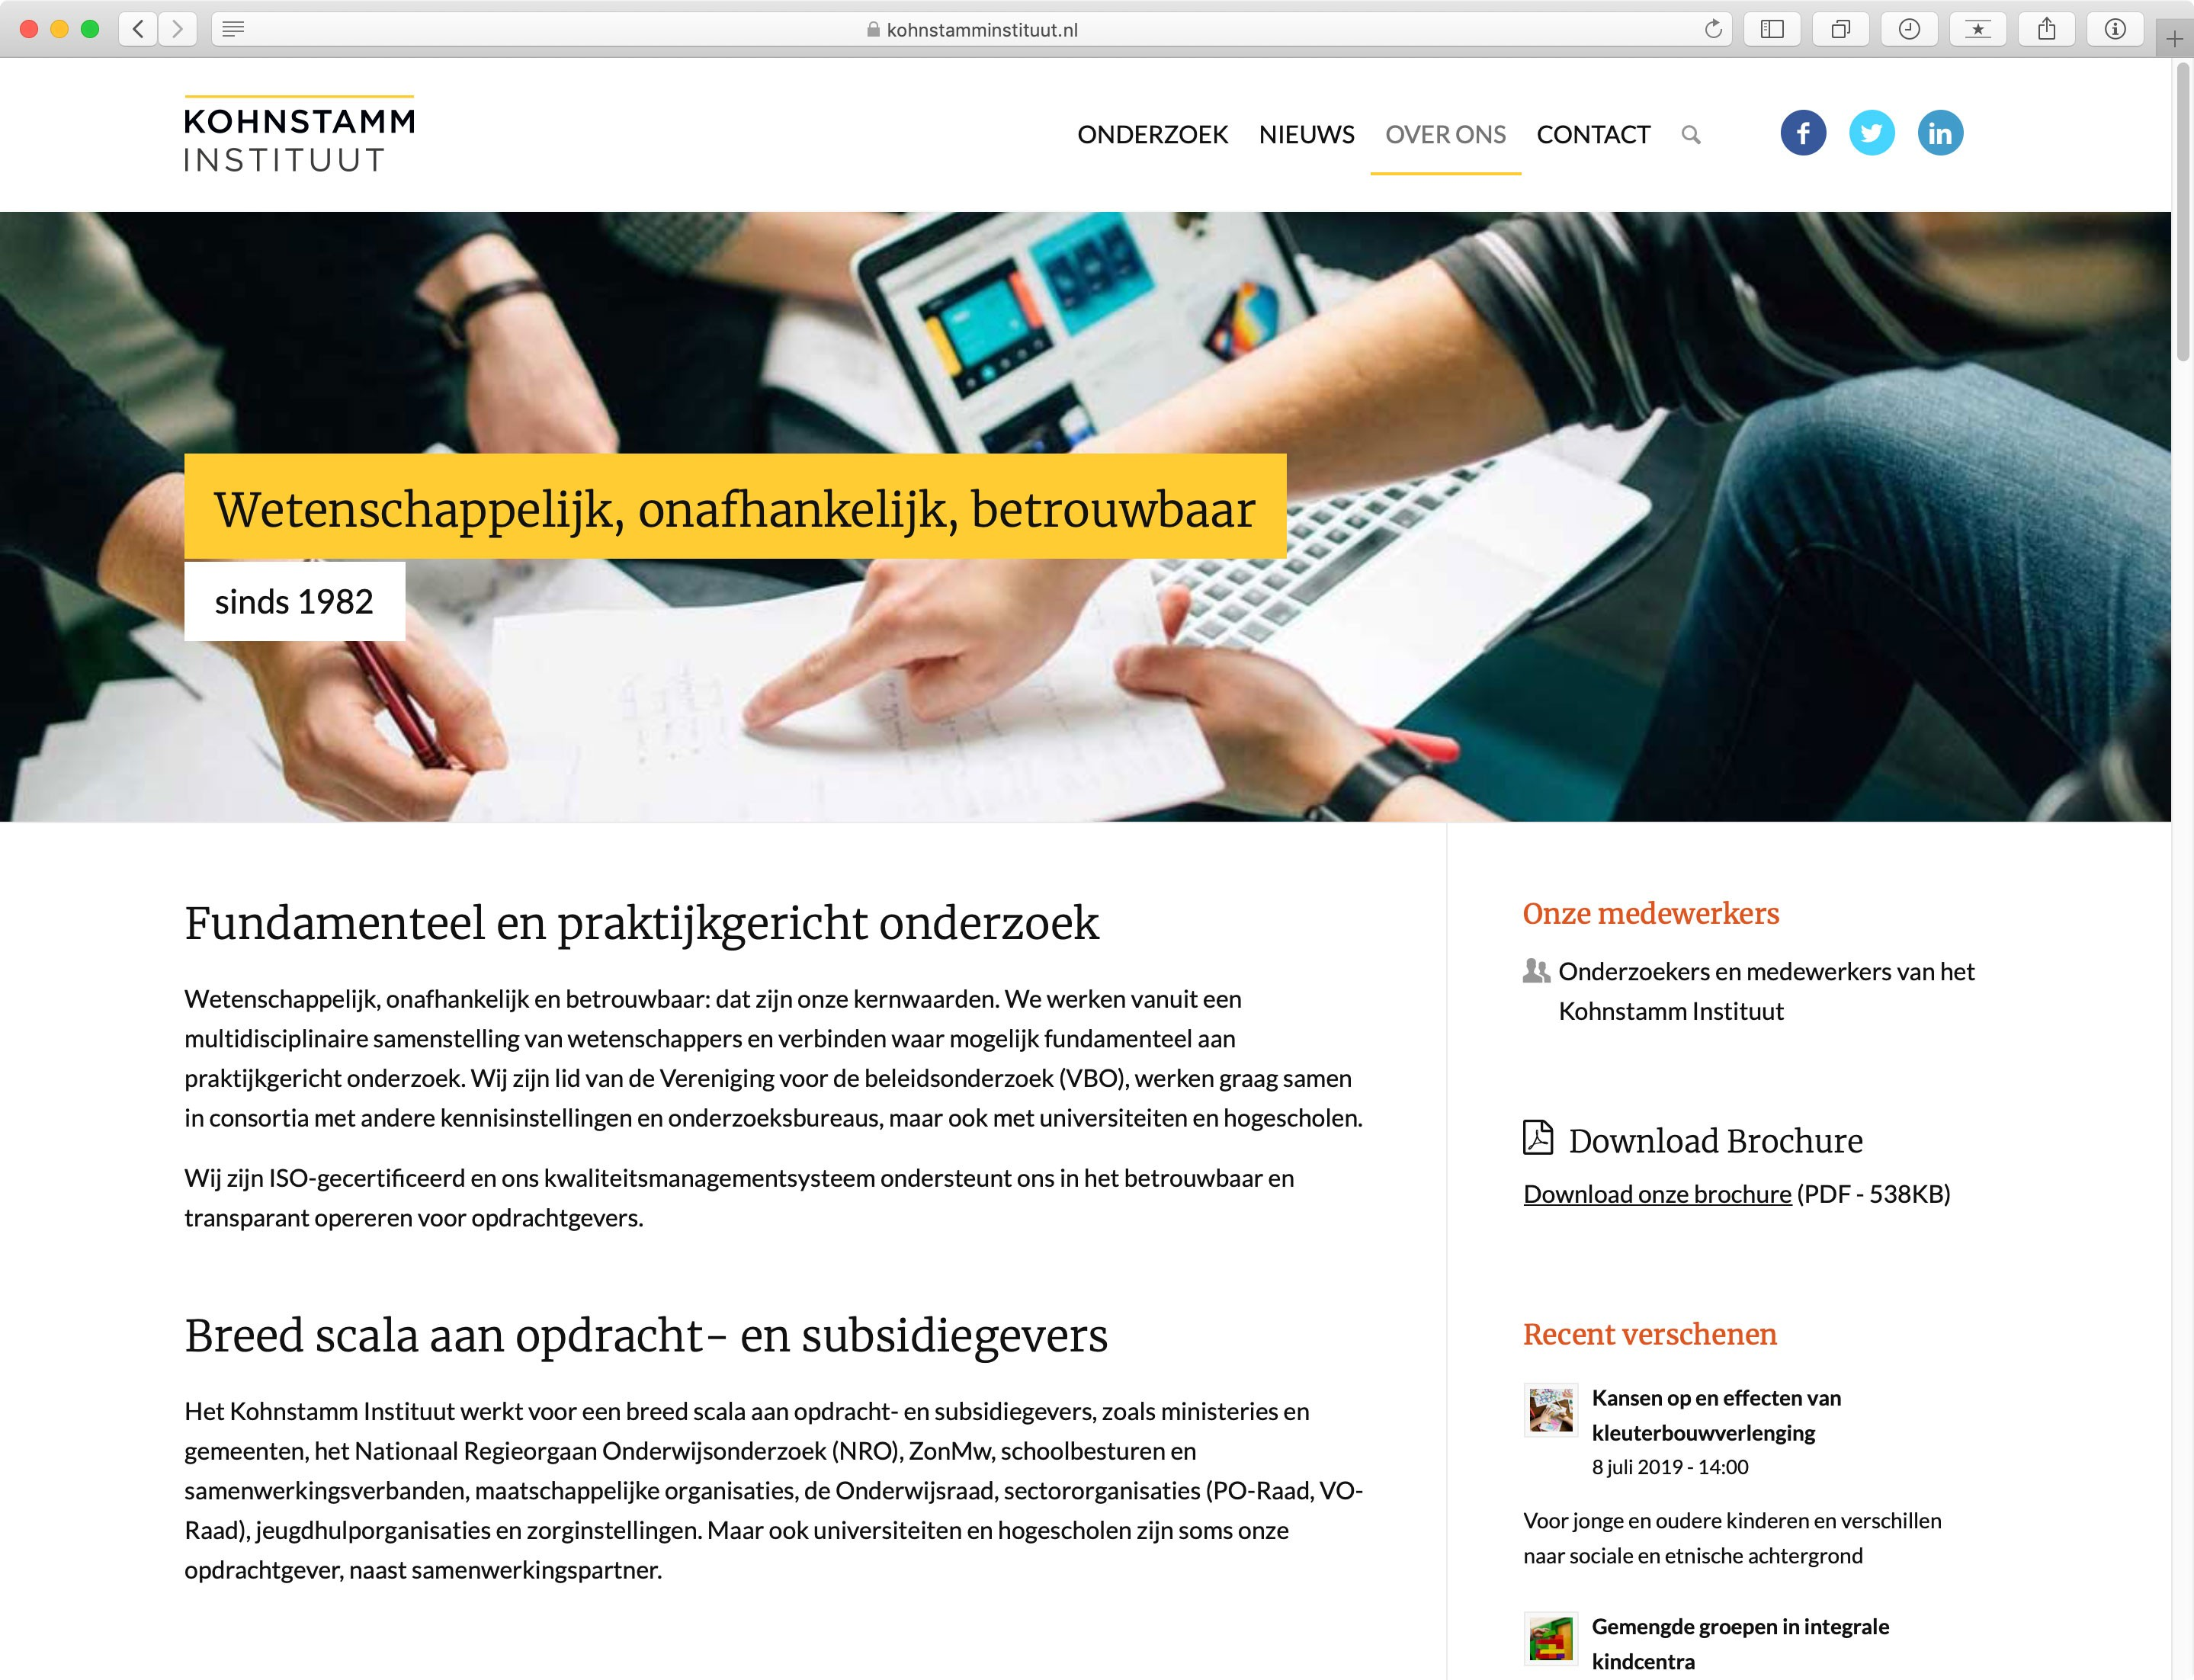 Website Kohnstamm Instituut - Pagina Over Ons